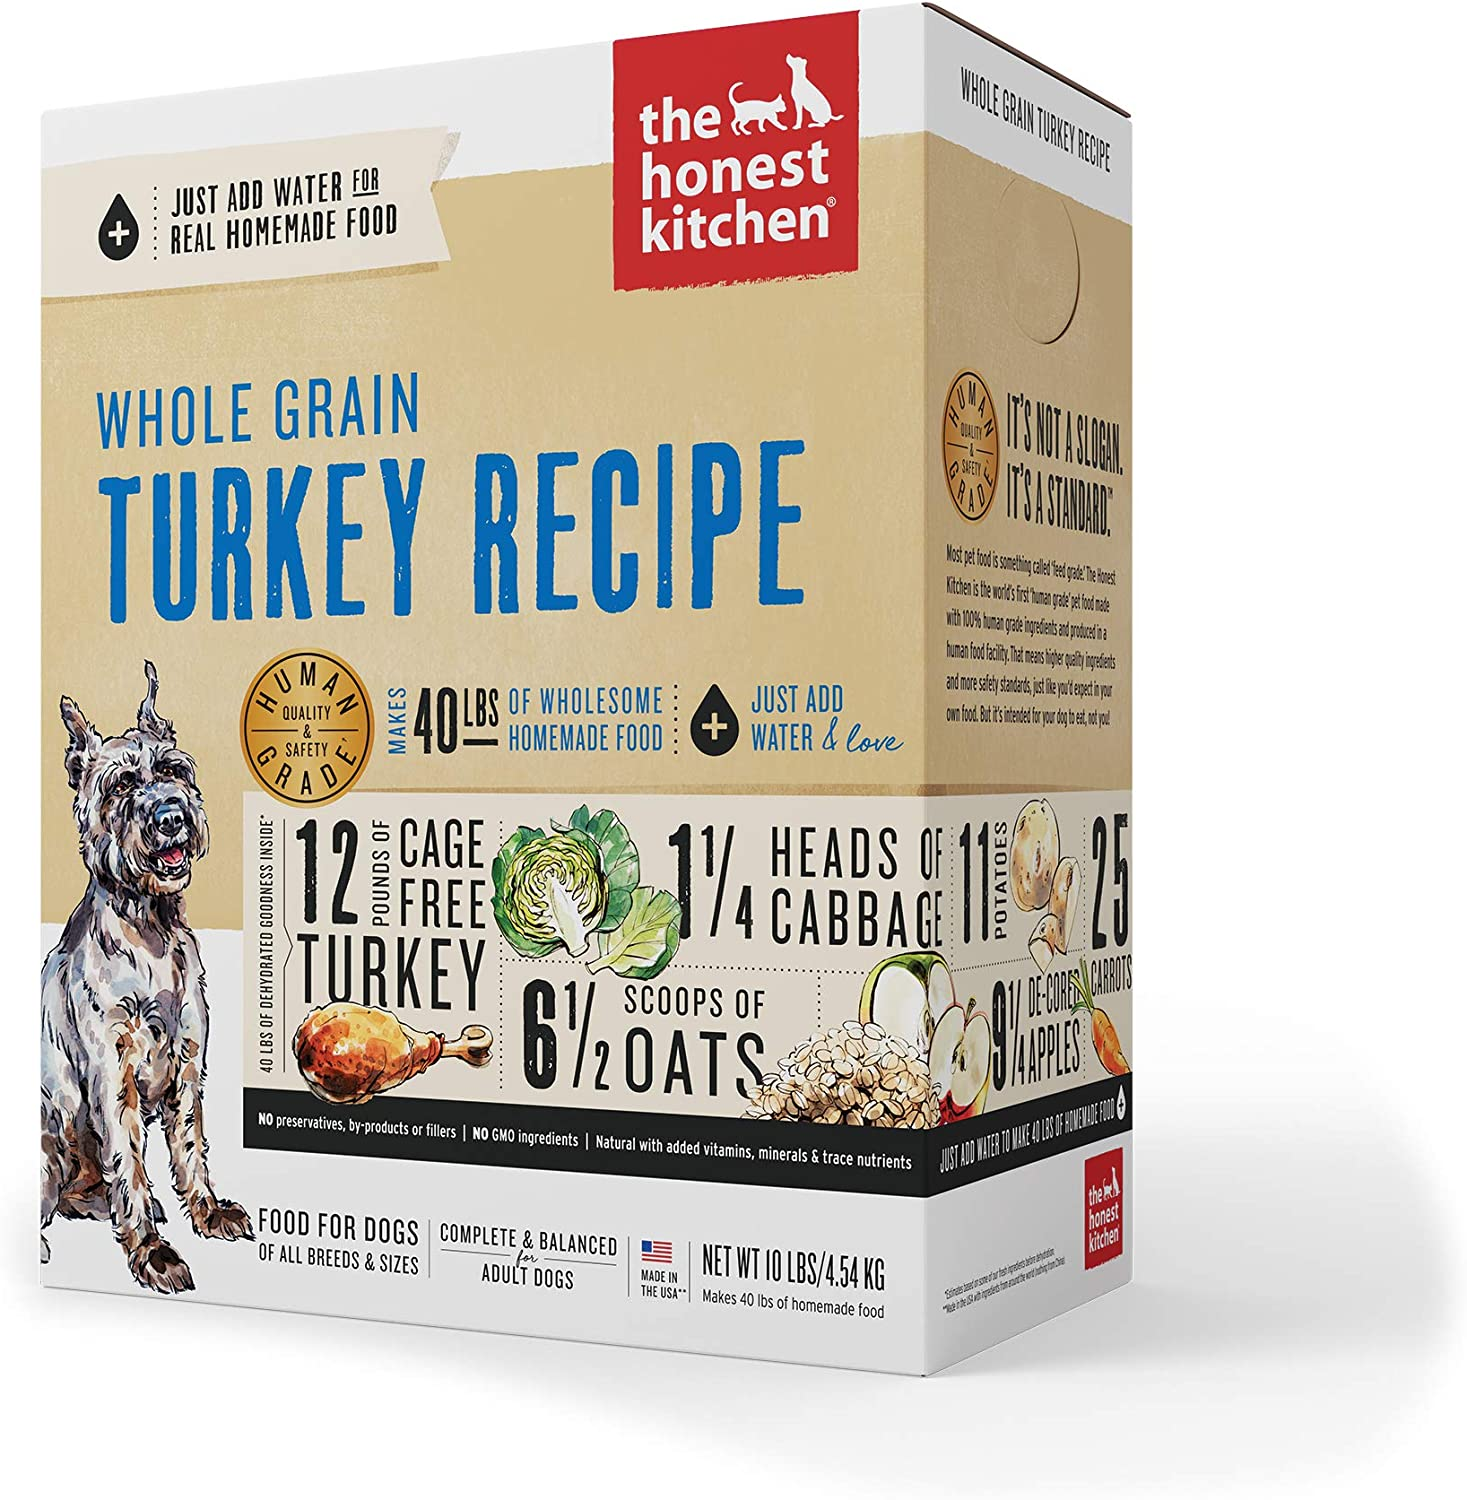 6. The Honest Kitchen Whole Grain Turkey Recipe Dehydrated Dog Food